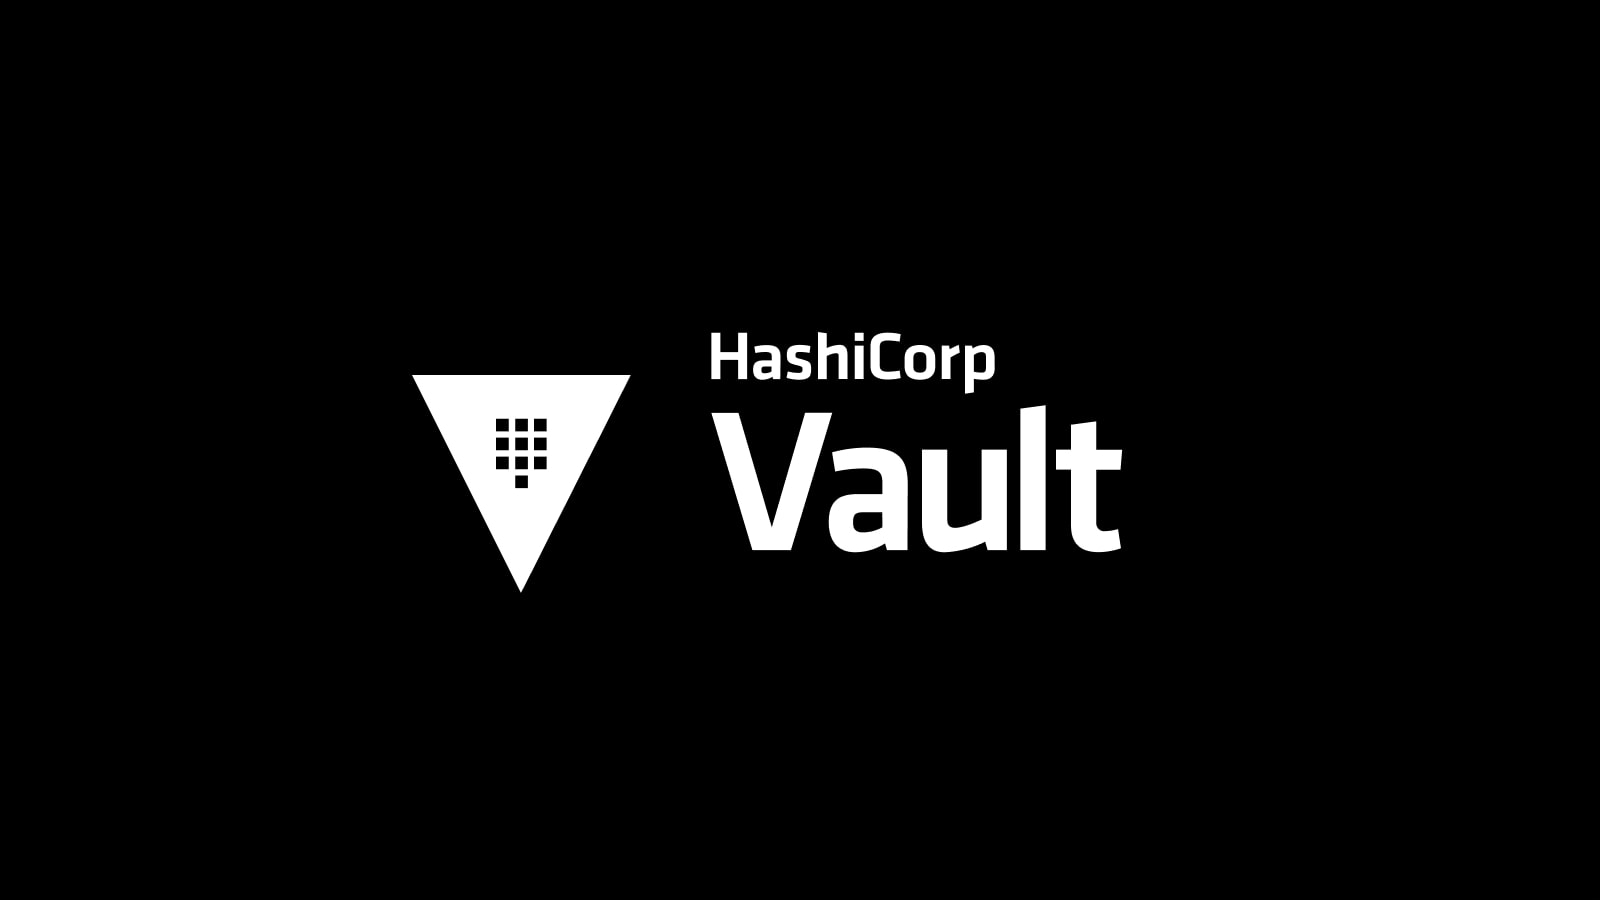 HashiCorp Vault Integrates with ServiceNow for Credential Management